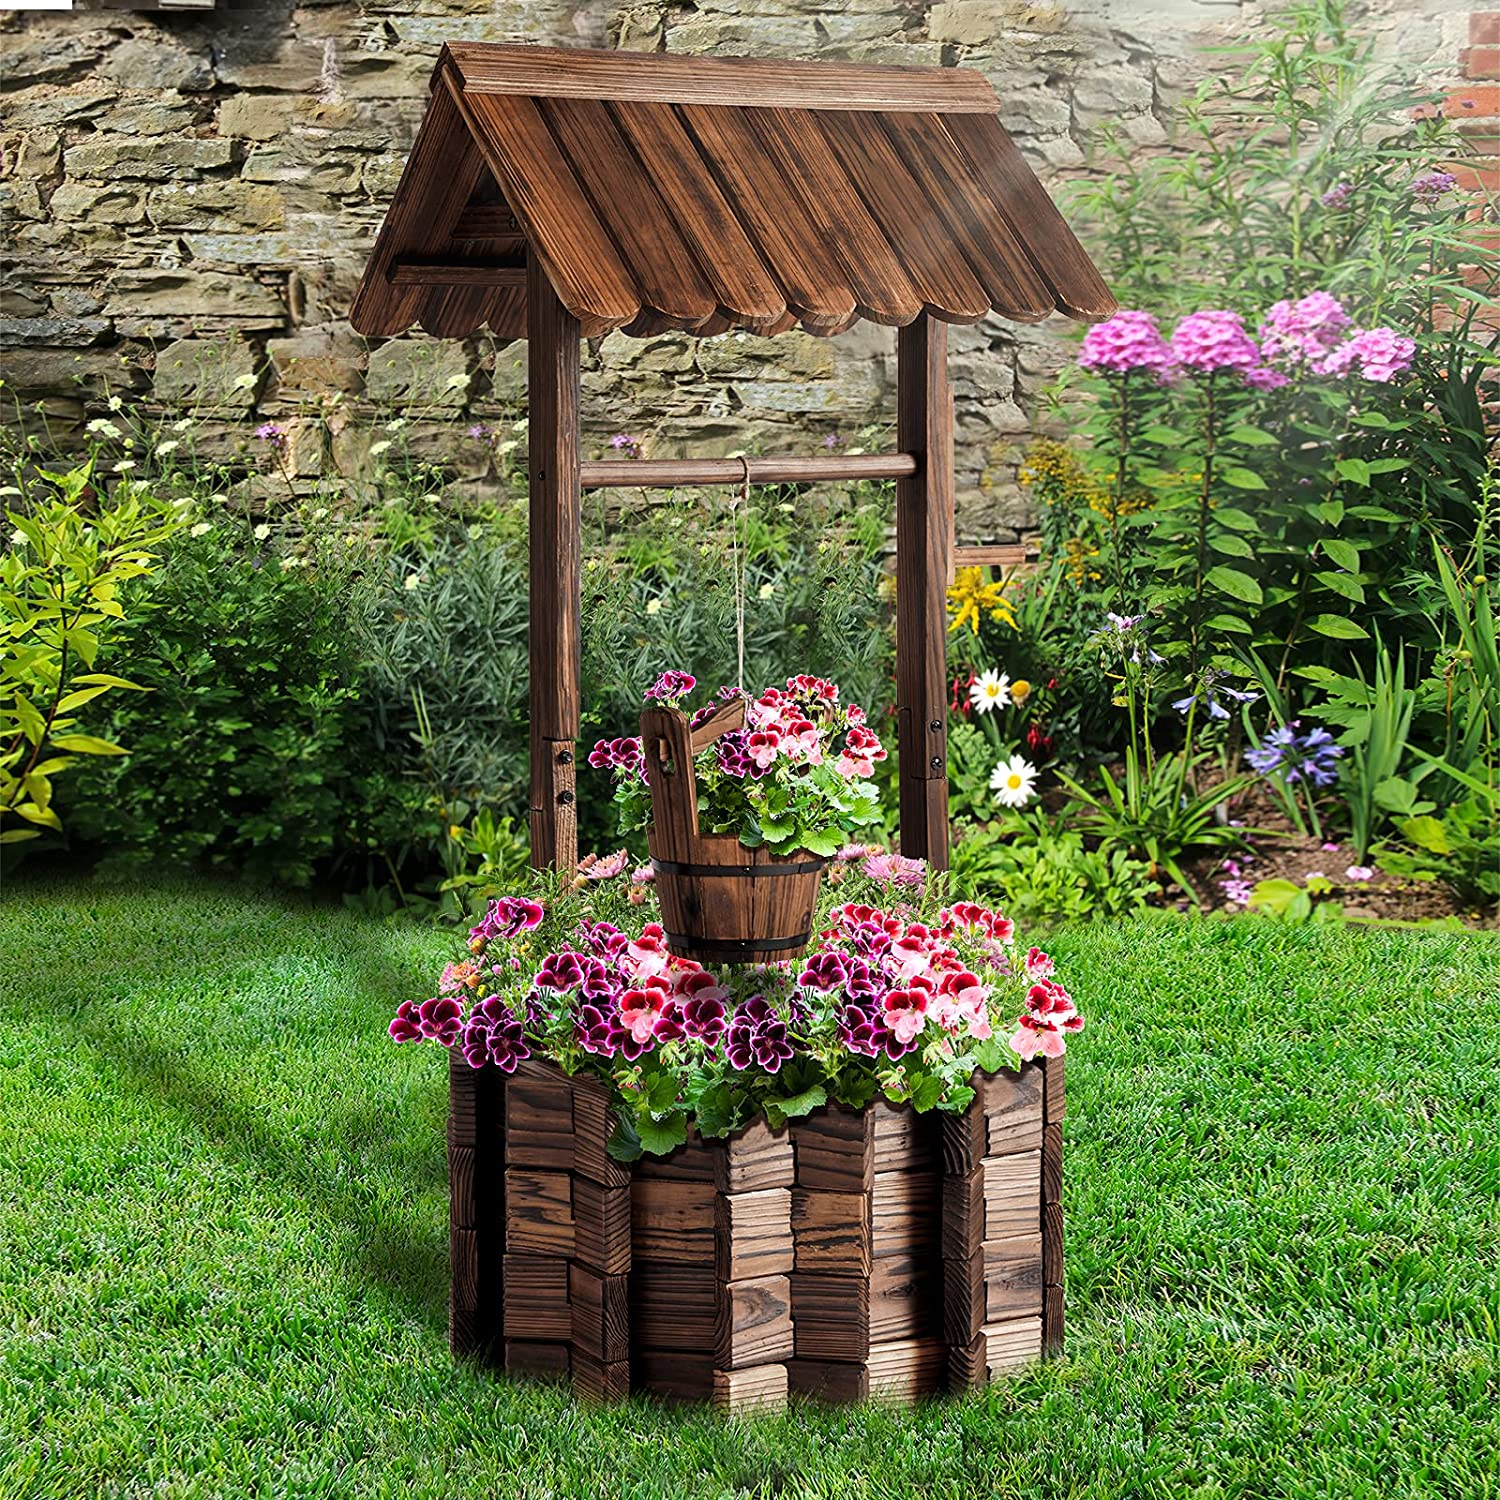 Aoxun Wooden Outlet SALE Wishing Well Planter with for Bucket Hanging Flower Max 85% OFF